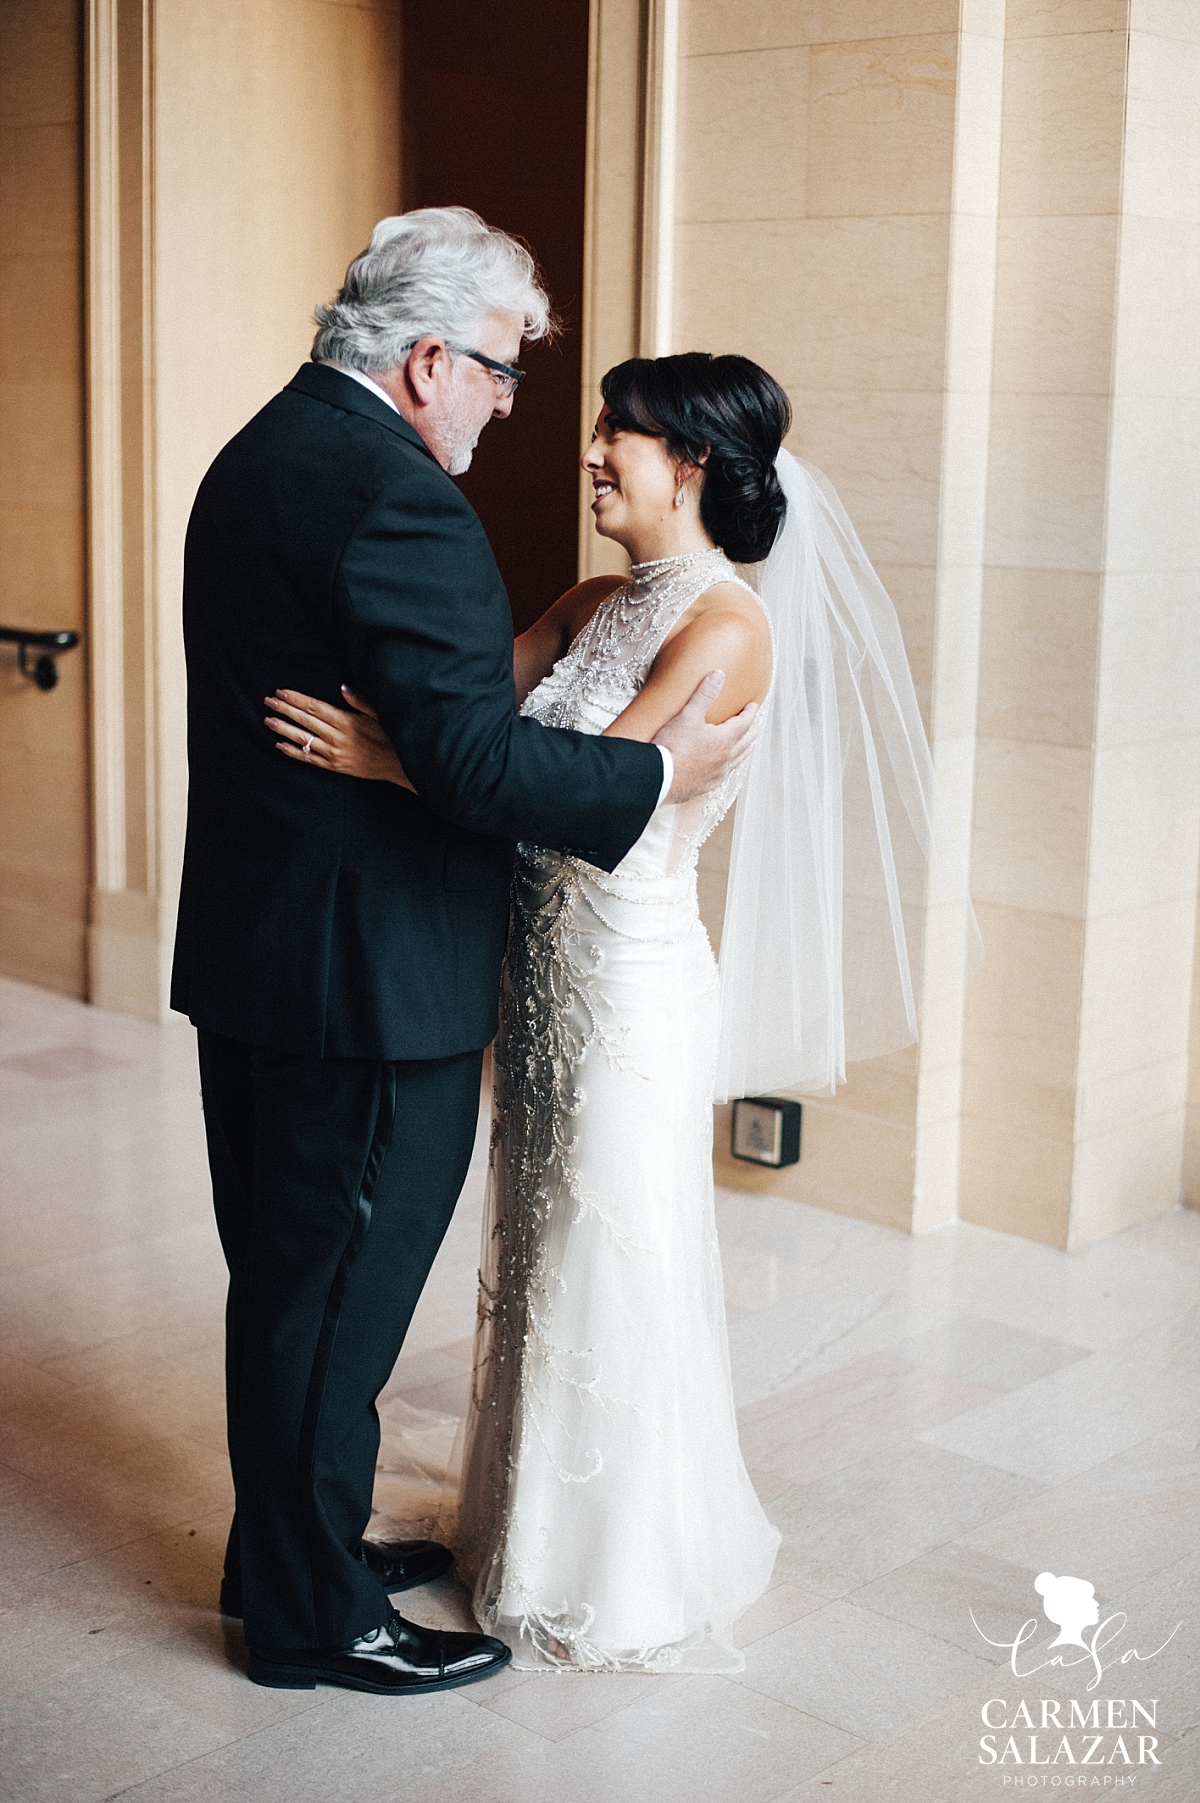 Emotional father sees his daughter before wedding - Carmen Salazar